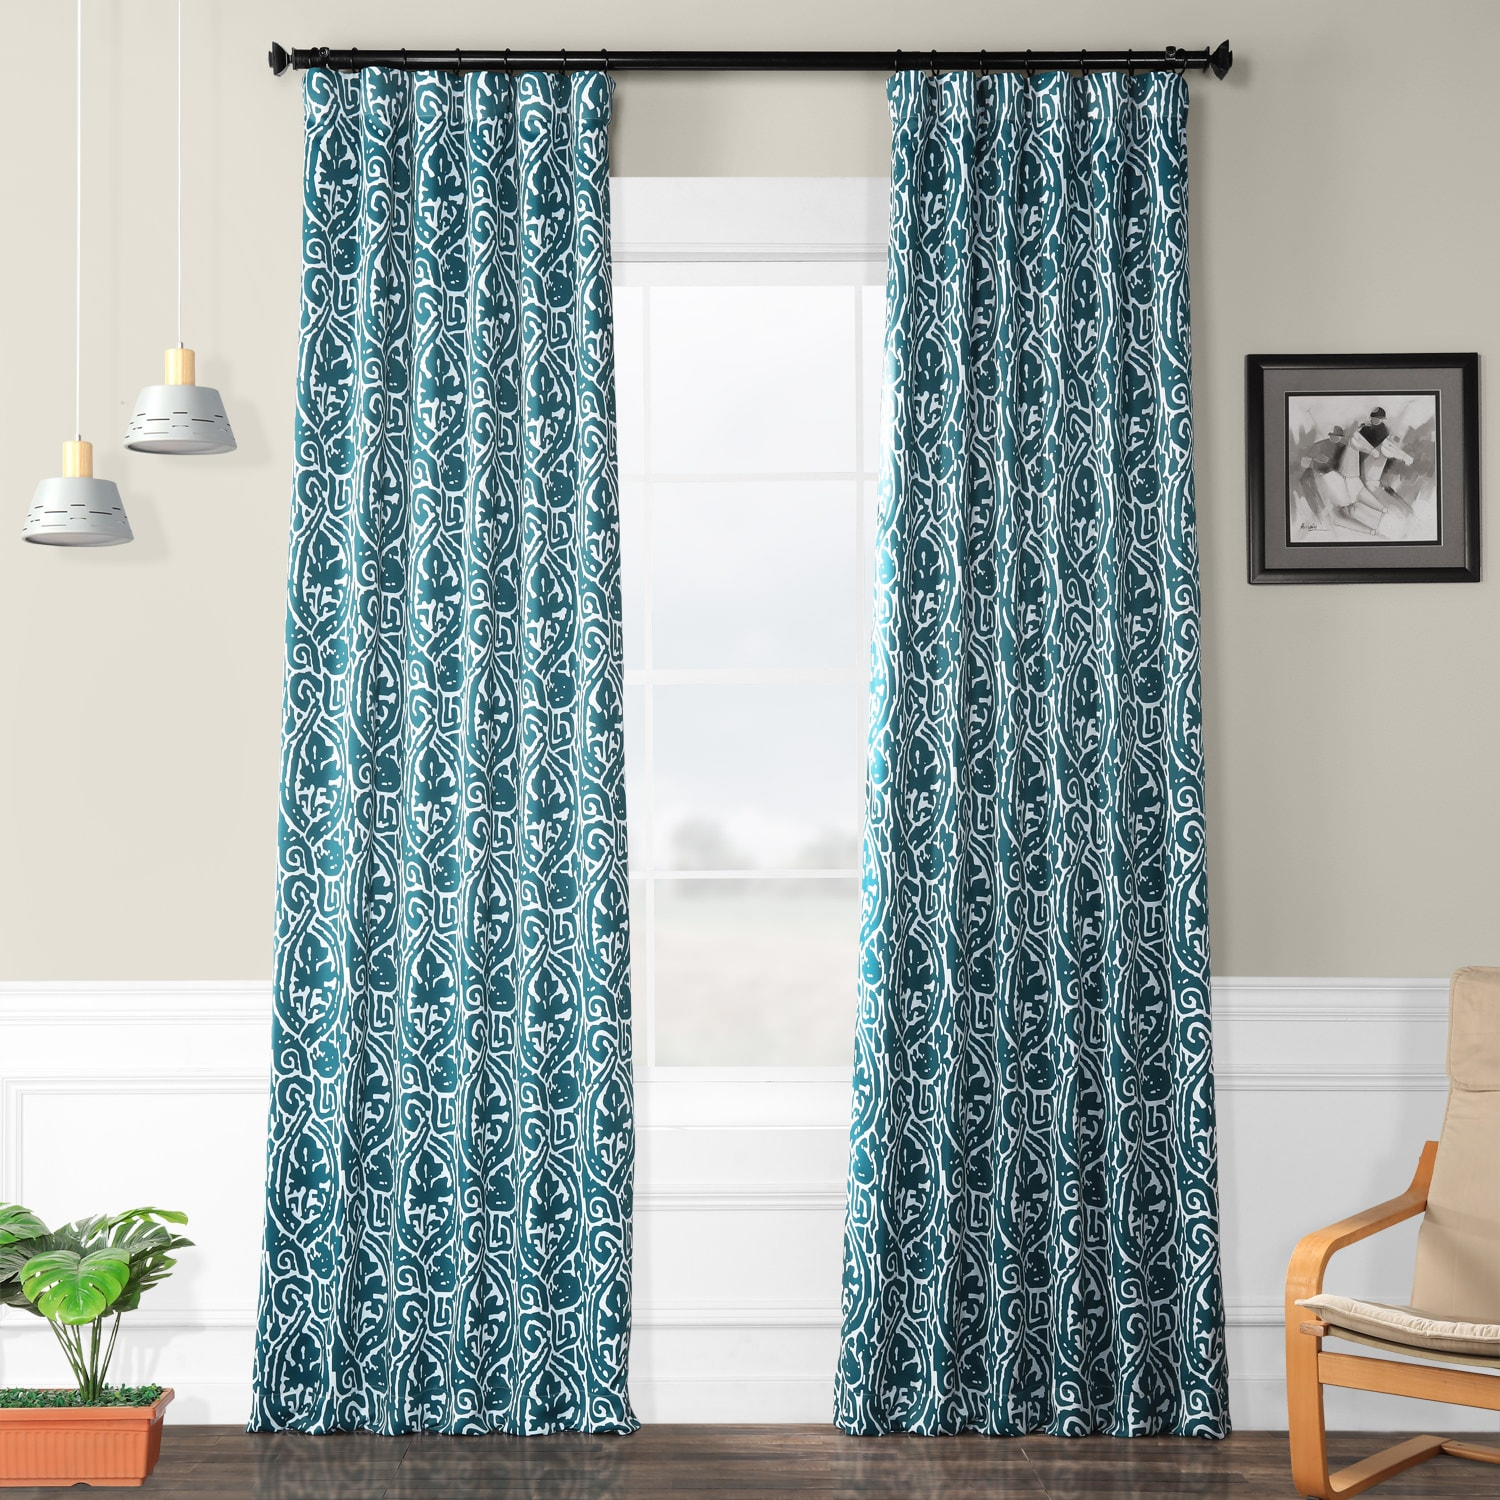 Teal Blackout Curtains Abstract Teal Blackout Curtain